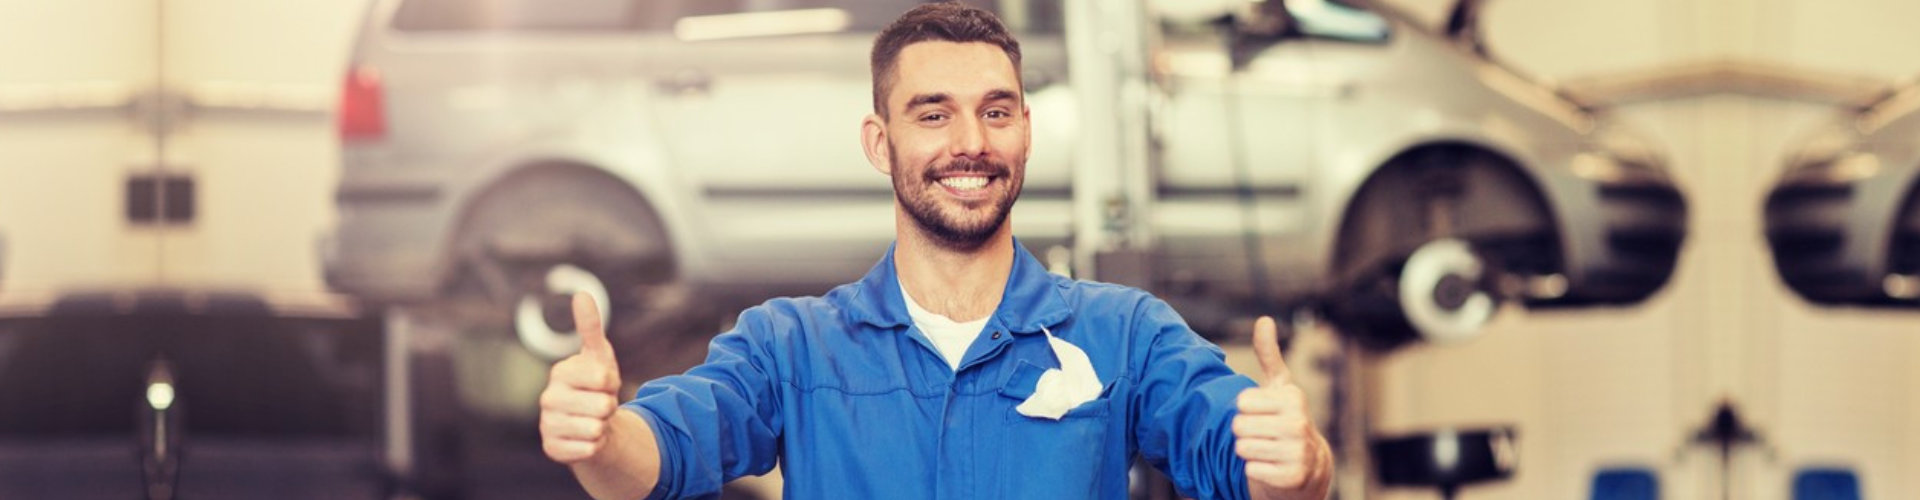 male smiling mechanic doing a thumbs up